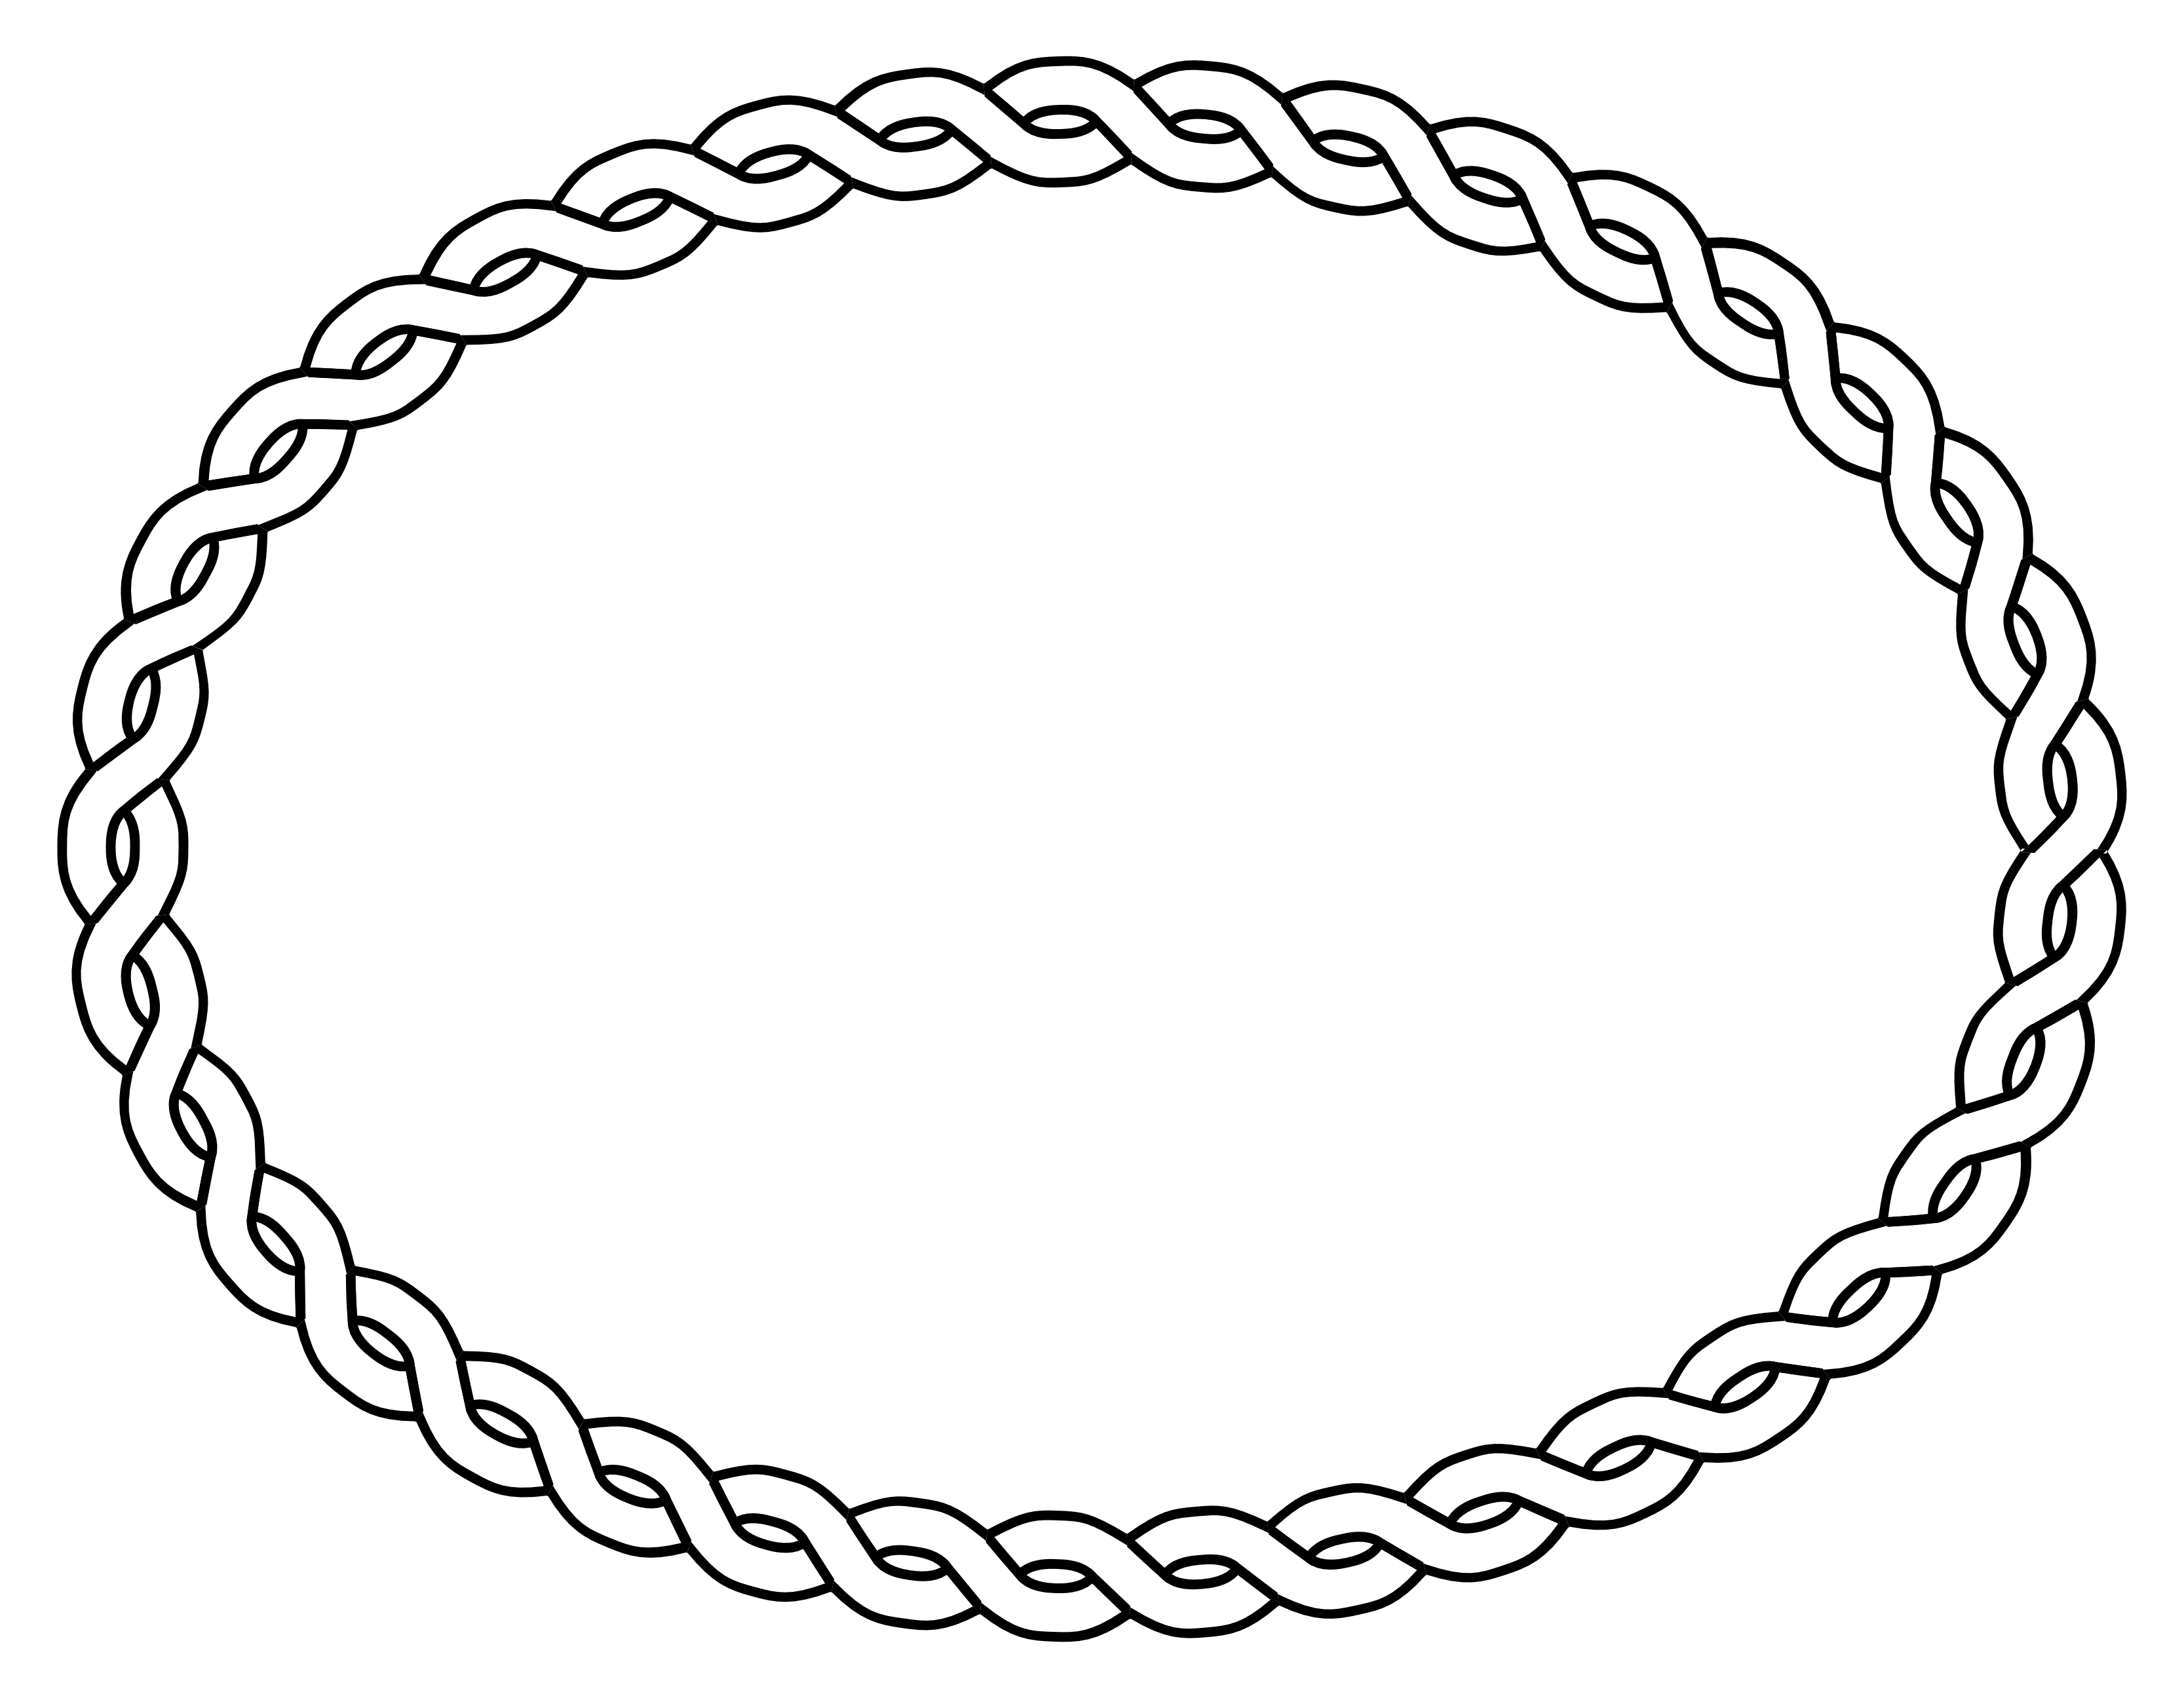 Oval Frame Clipart Black And White Rope Border Oval Black White Line